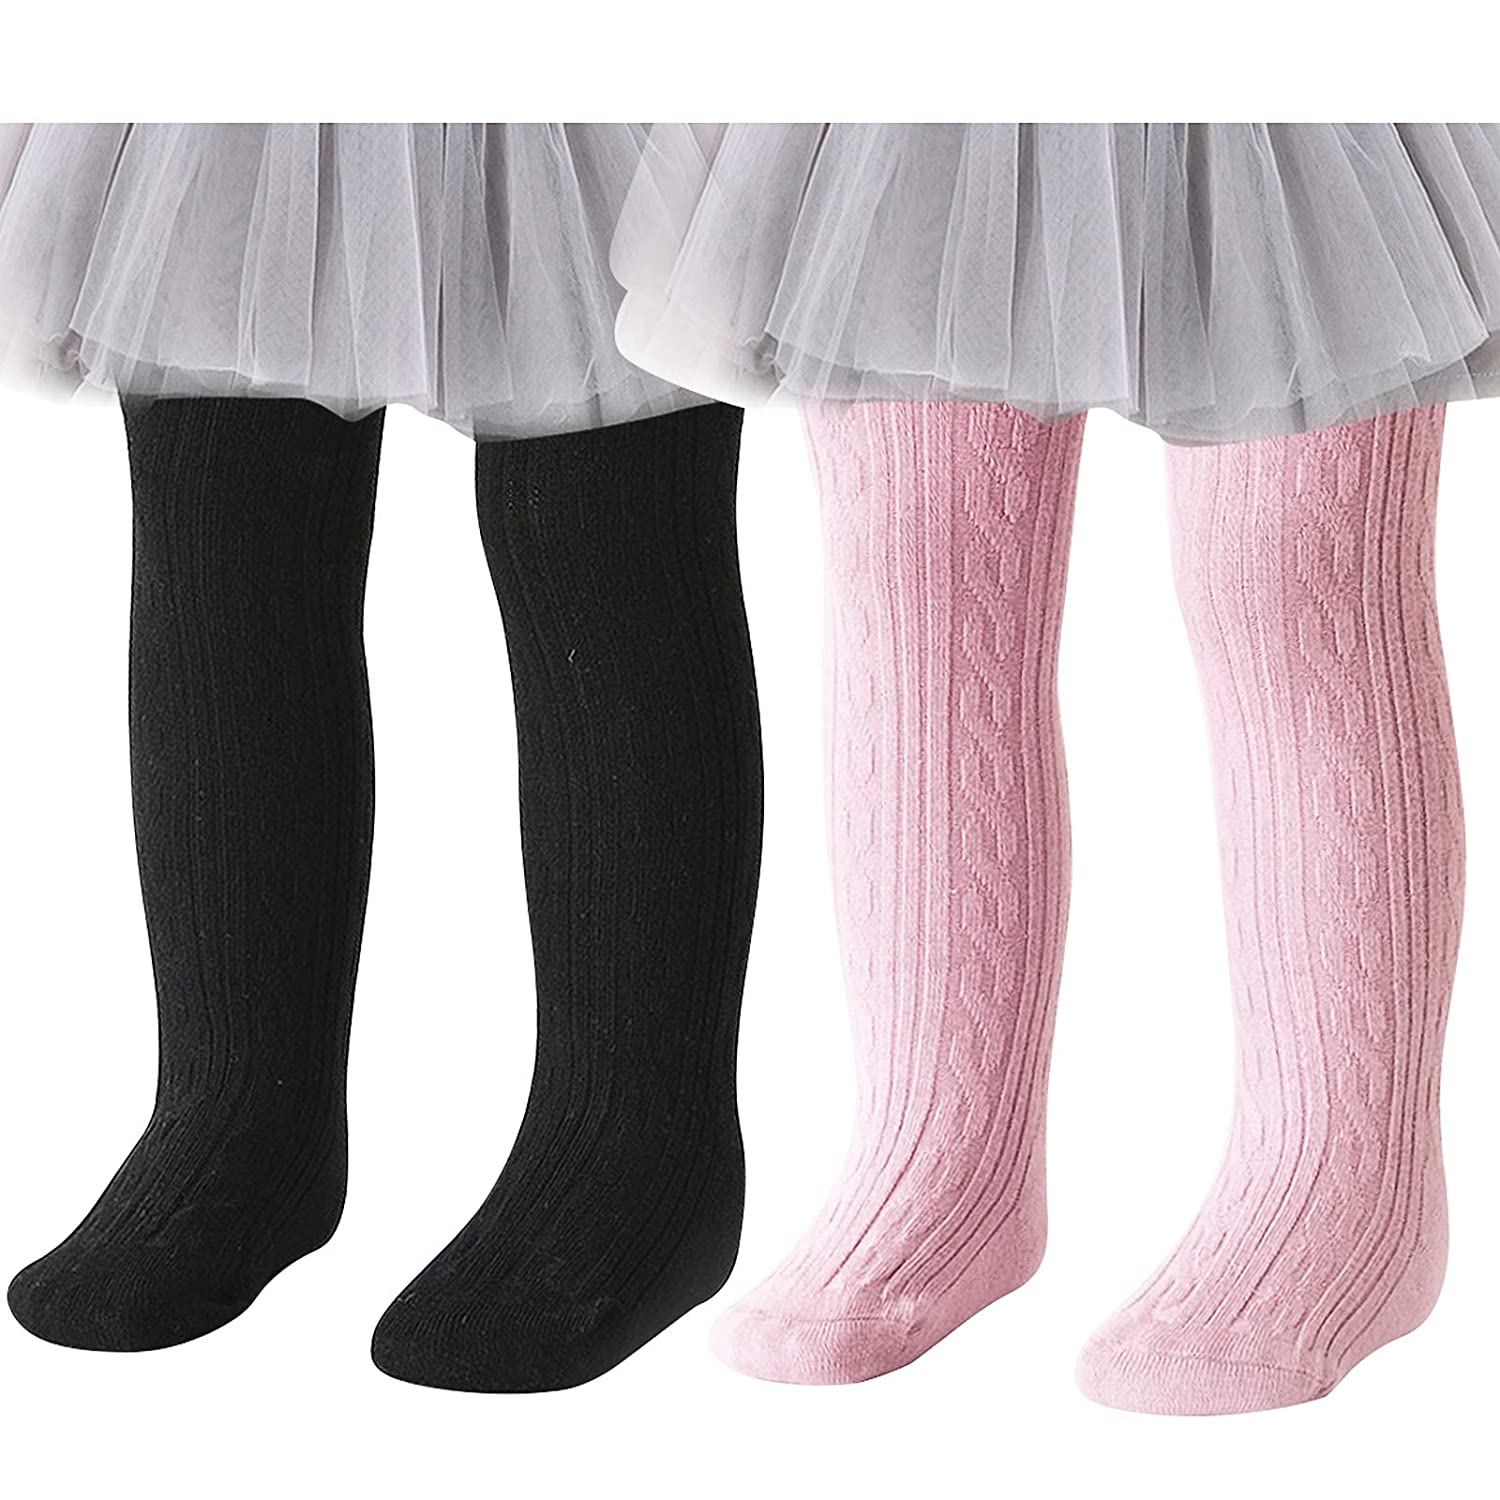 Baby Toddler Girls Tights Seamless Cable Knit Cotton Leggings Pants Stockings for Infant Baby Girl